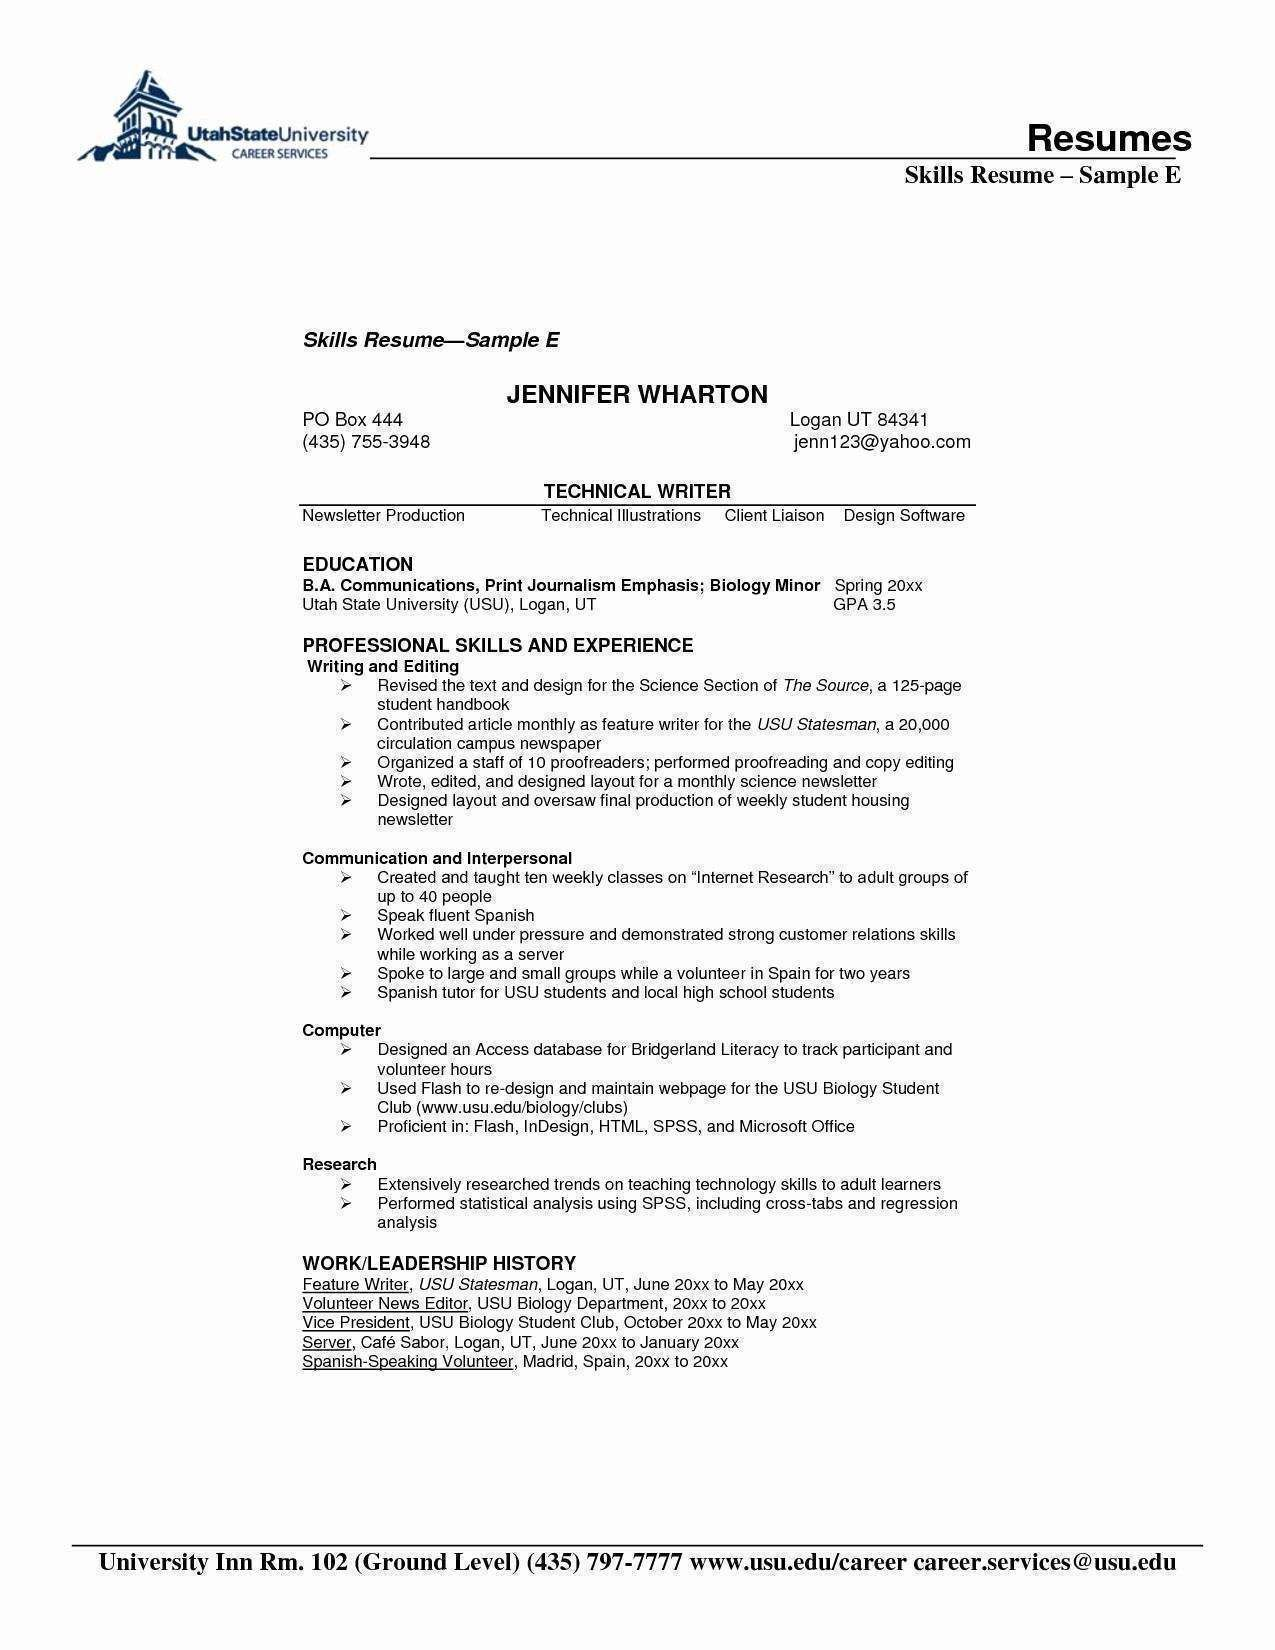 71 Cool Collection Of Strong Resume Examples 2016 Check More At Https Www Ourpetscrawley Com 71 Cool Collection Of Strong Resume Examples 2016